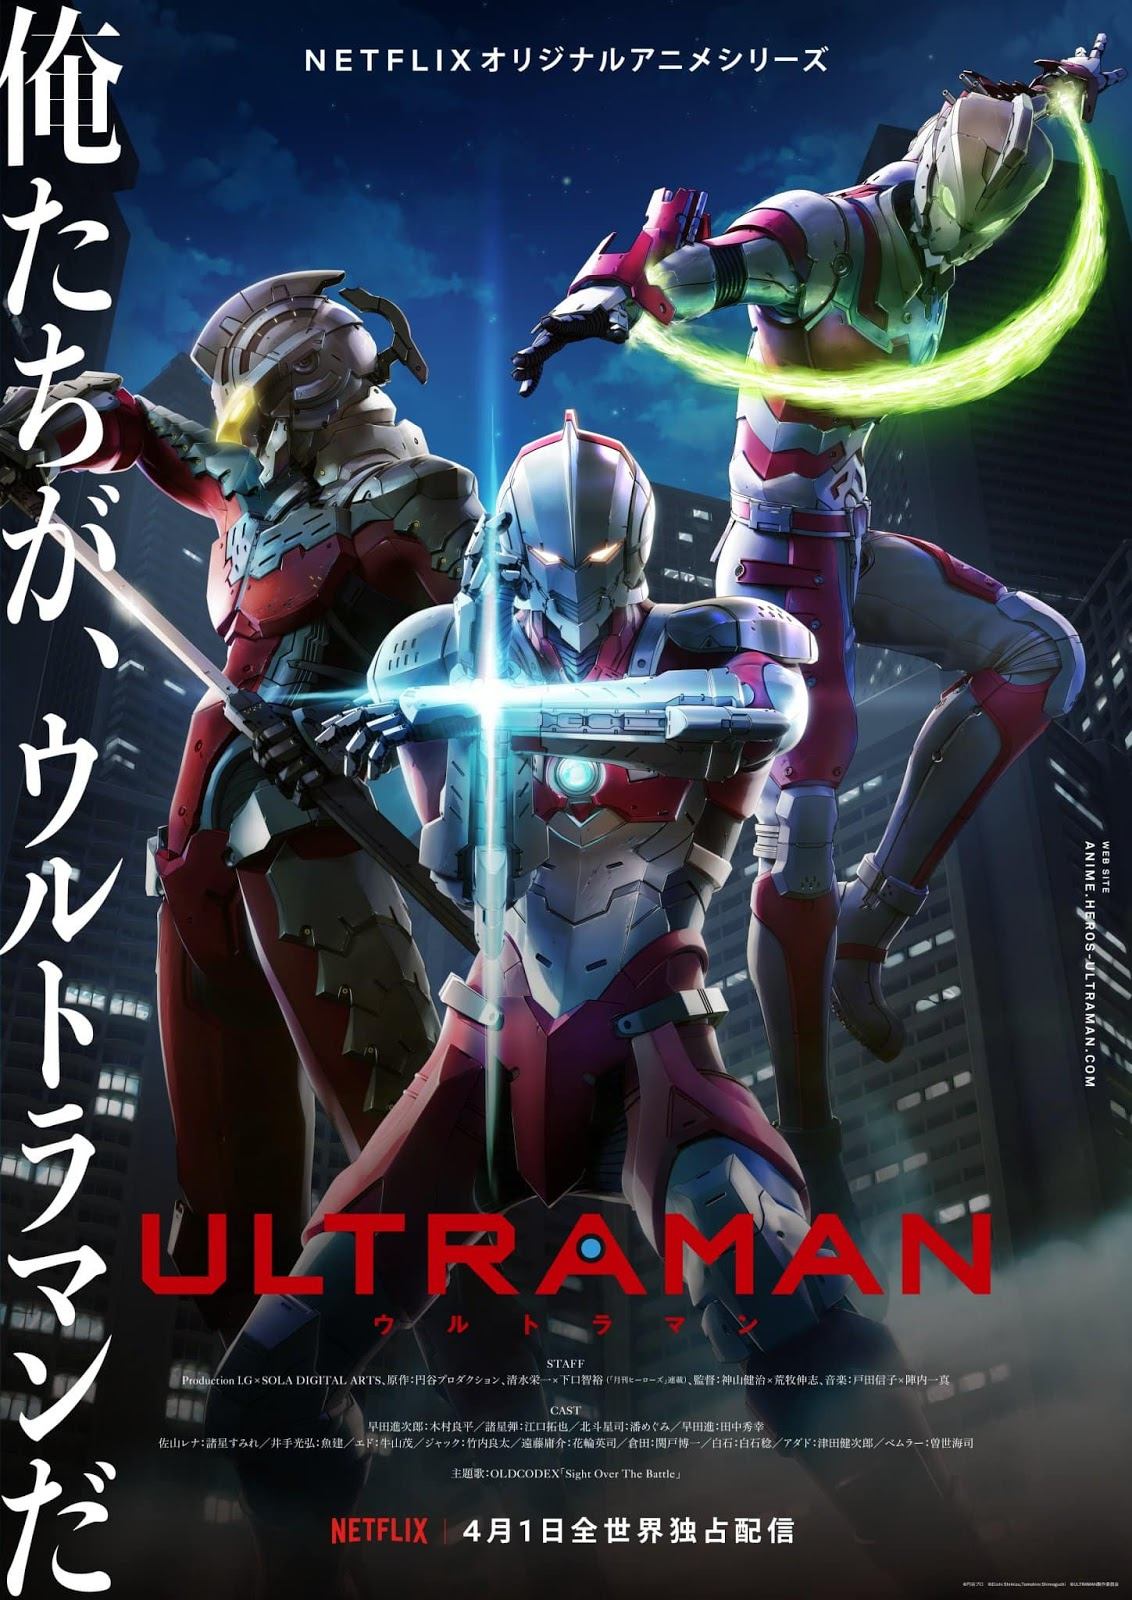 New Netflix ULTRAMAN Poster & Stills